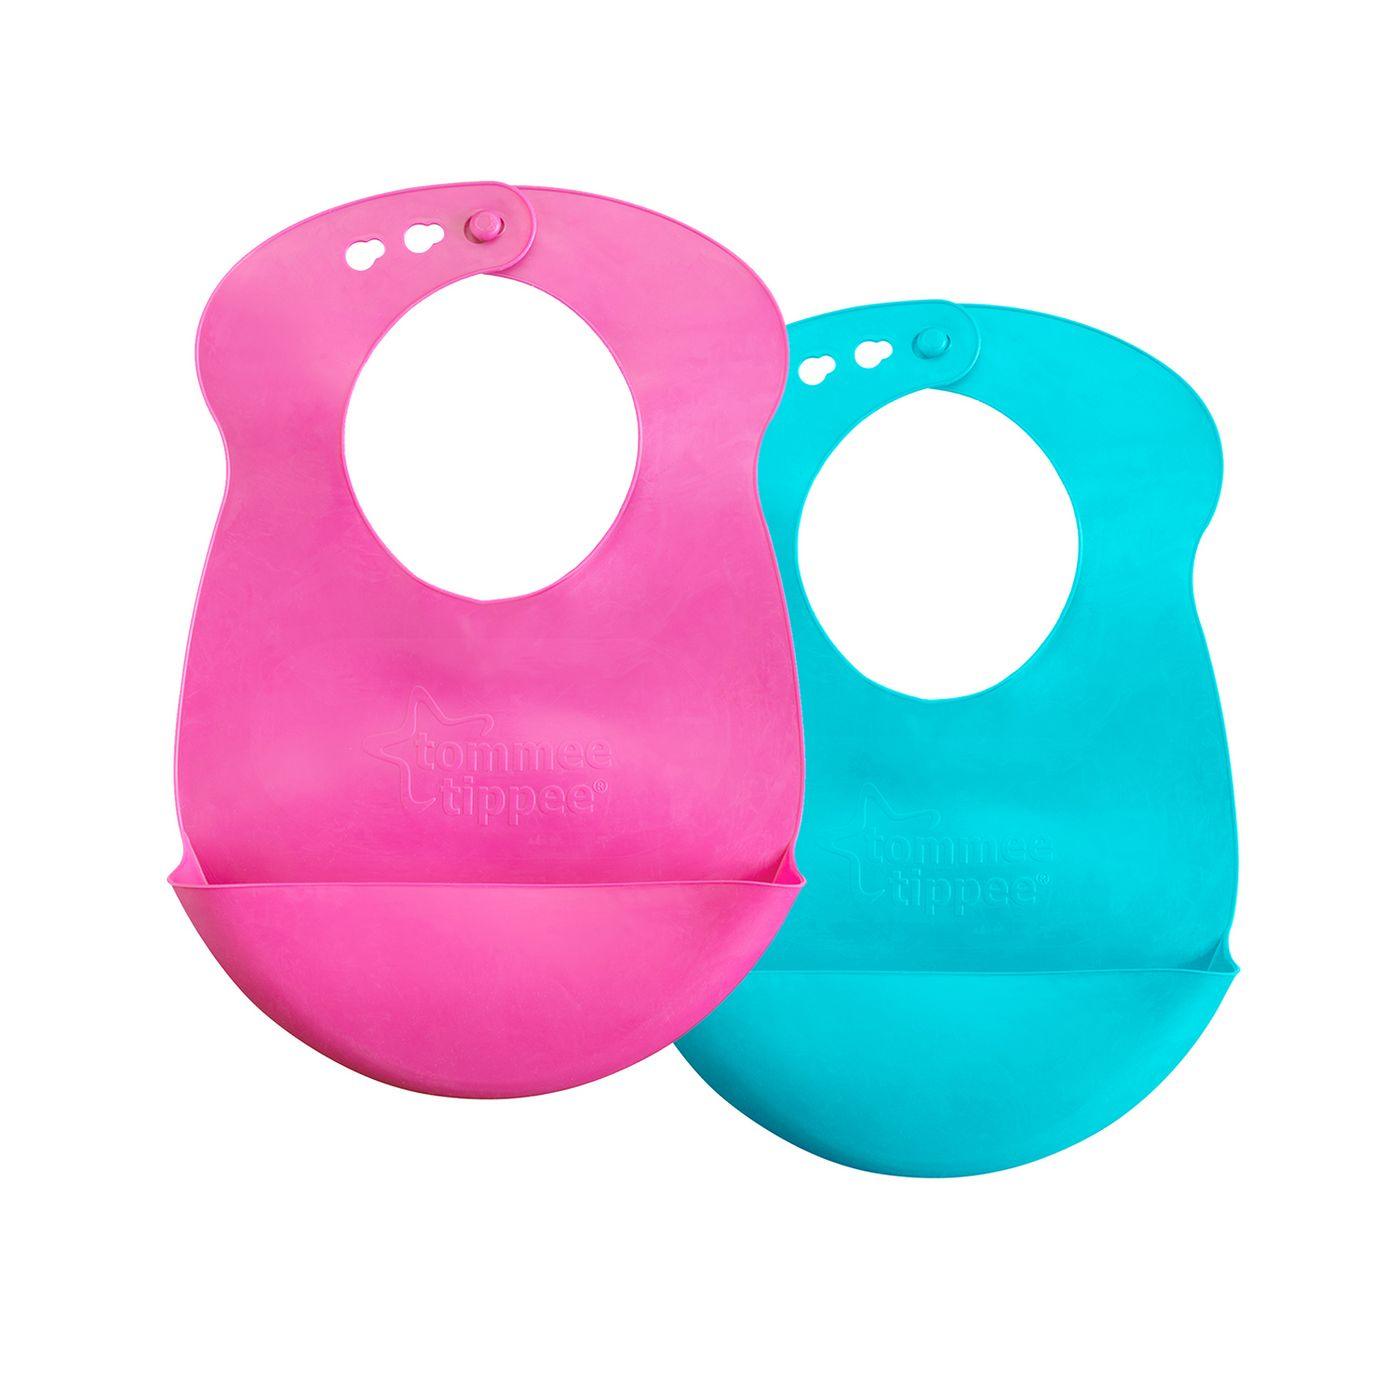 Tommee Tippee Roll 'n' Go Baby Drip Catcher Bib 7+ months - 4pk - image 2 of 4